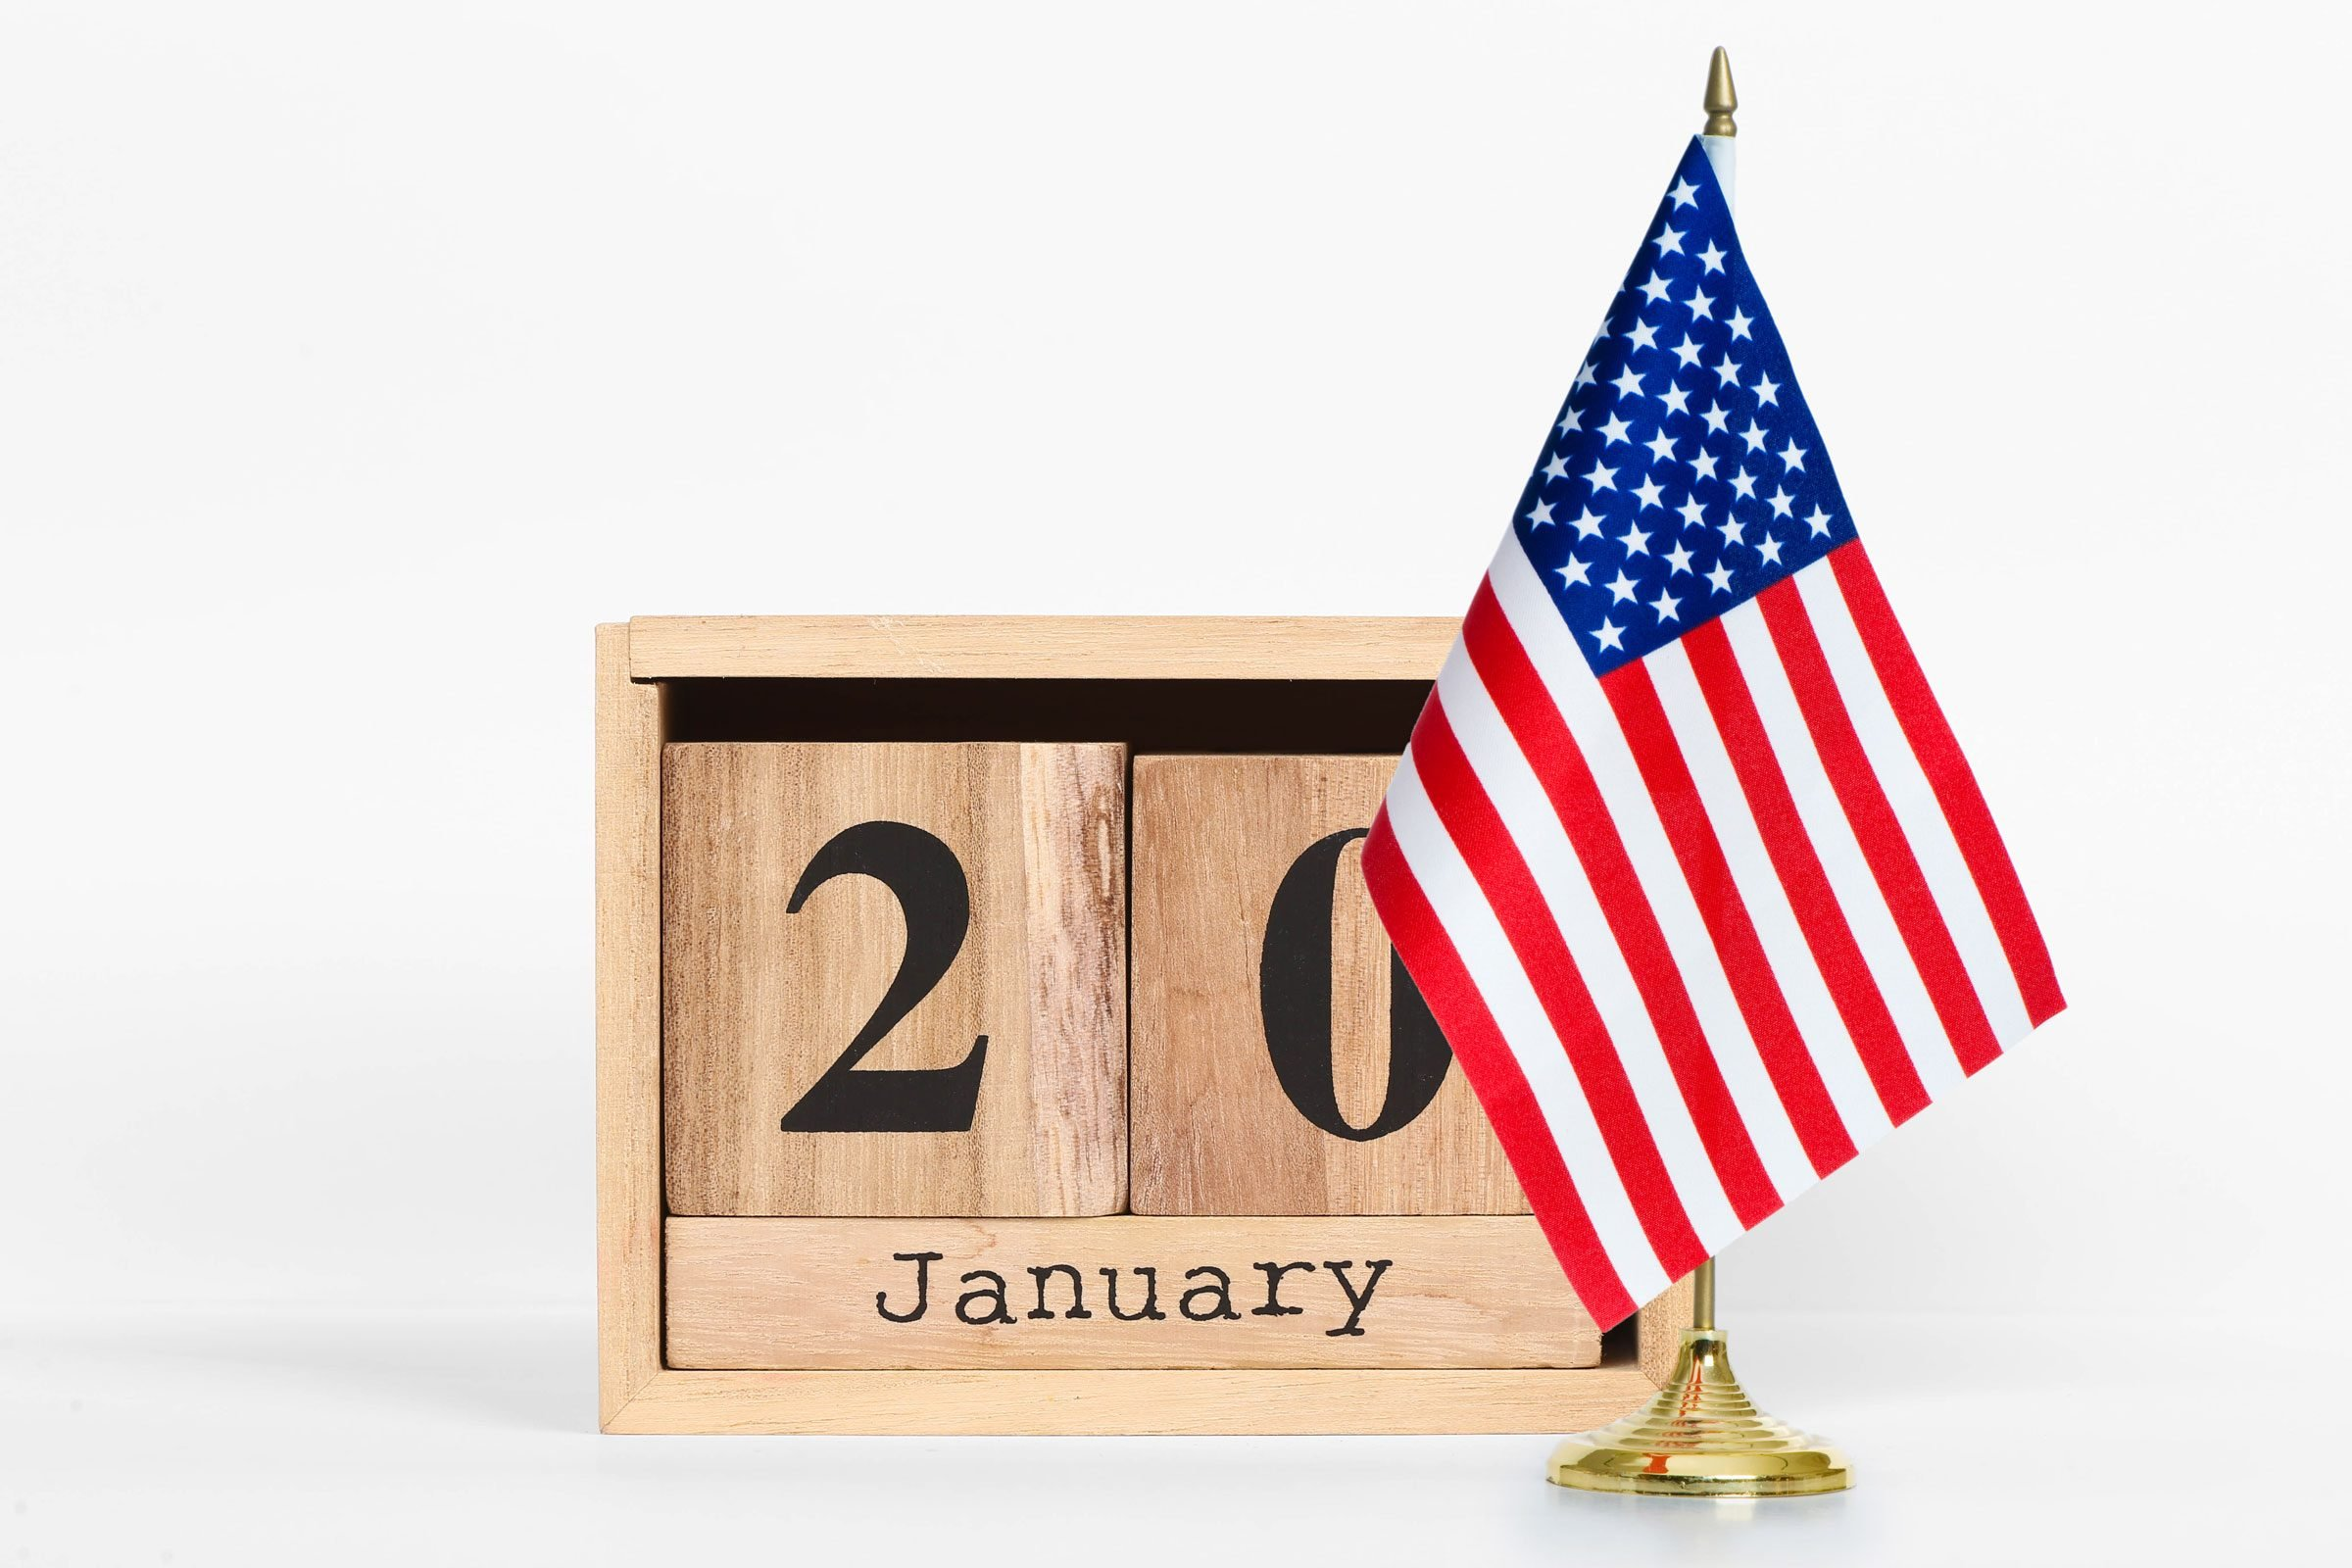 a perpetual calendar reads January 20 next to an American flag